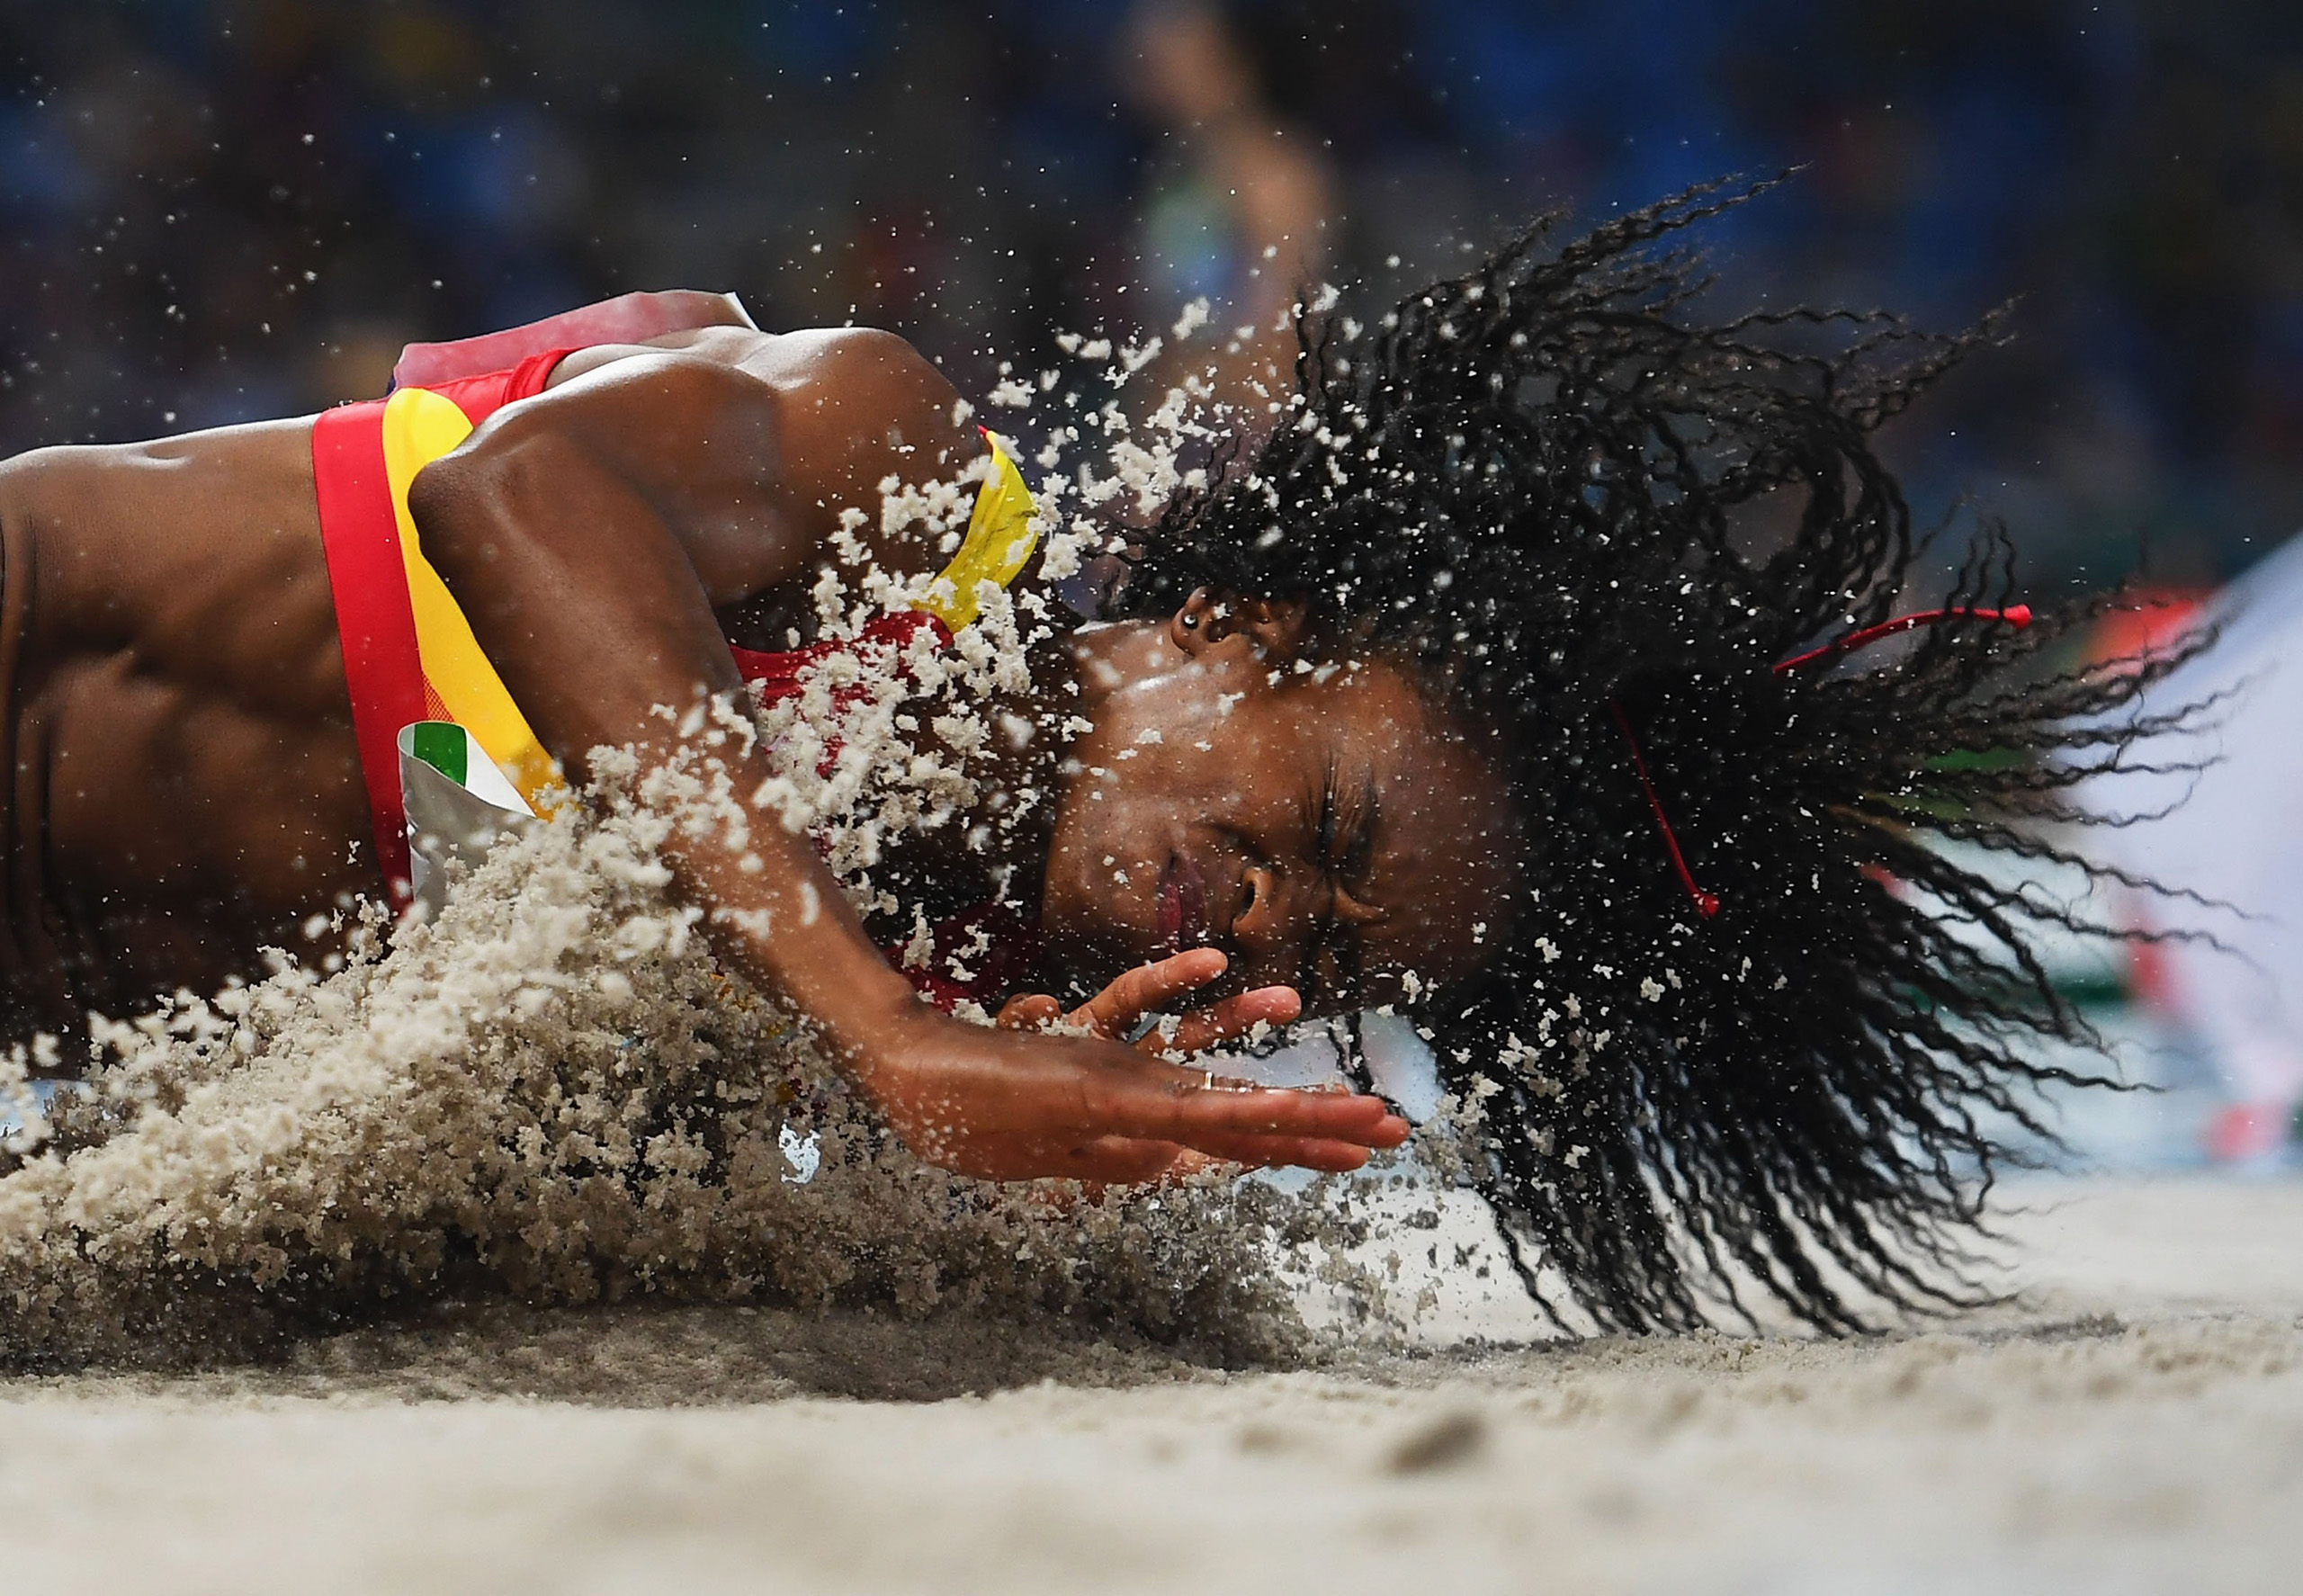 Juliet Itoya of Spain competes during the Women's Long Jump Qualifying Round on Day 11 of the Rio 2016 Olympic Games at the Olympic Stadium in Rio de Janeiro, Brazil, on Aug. 16, 2016.